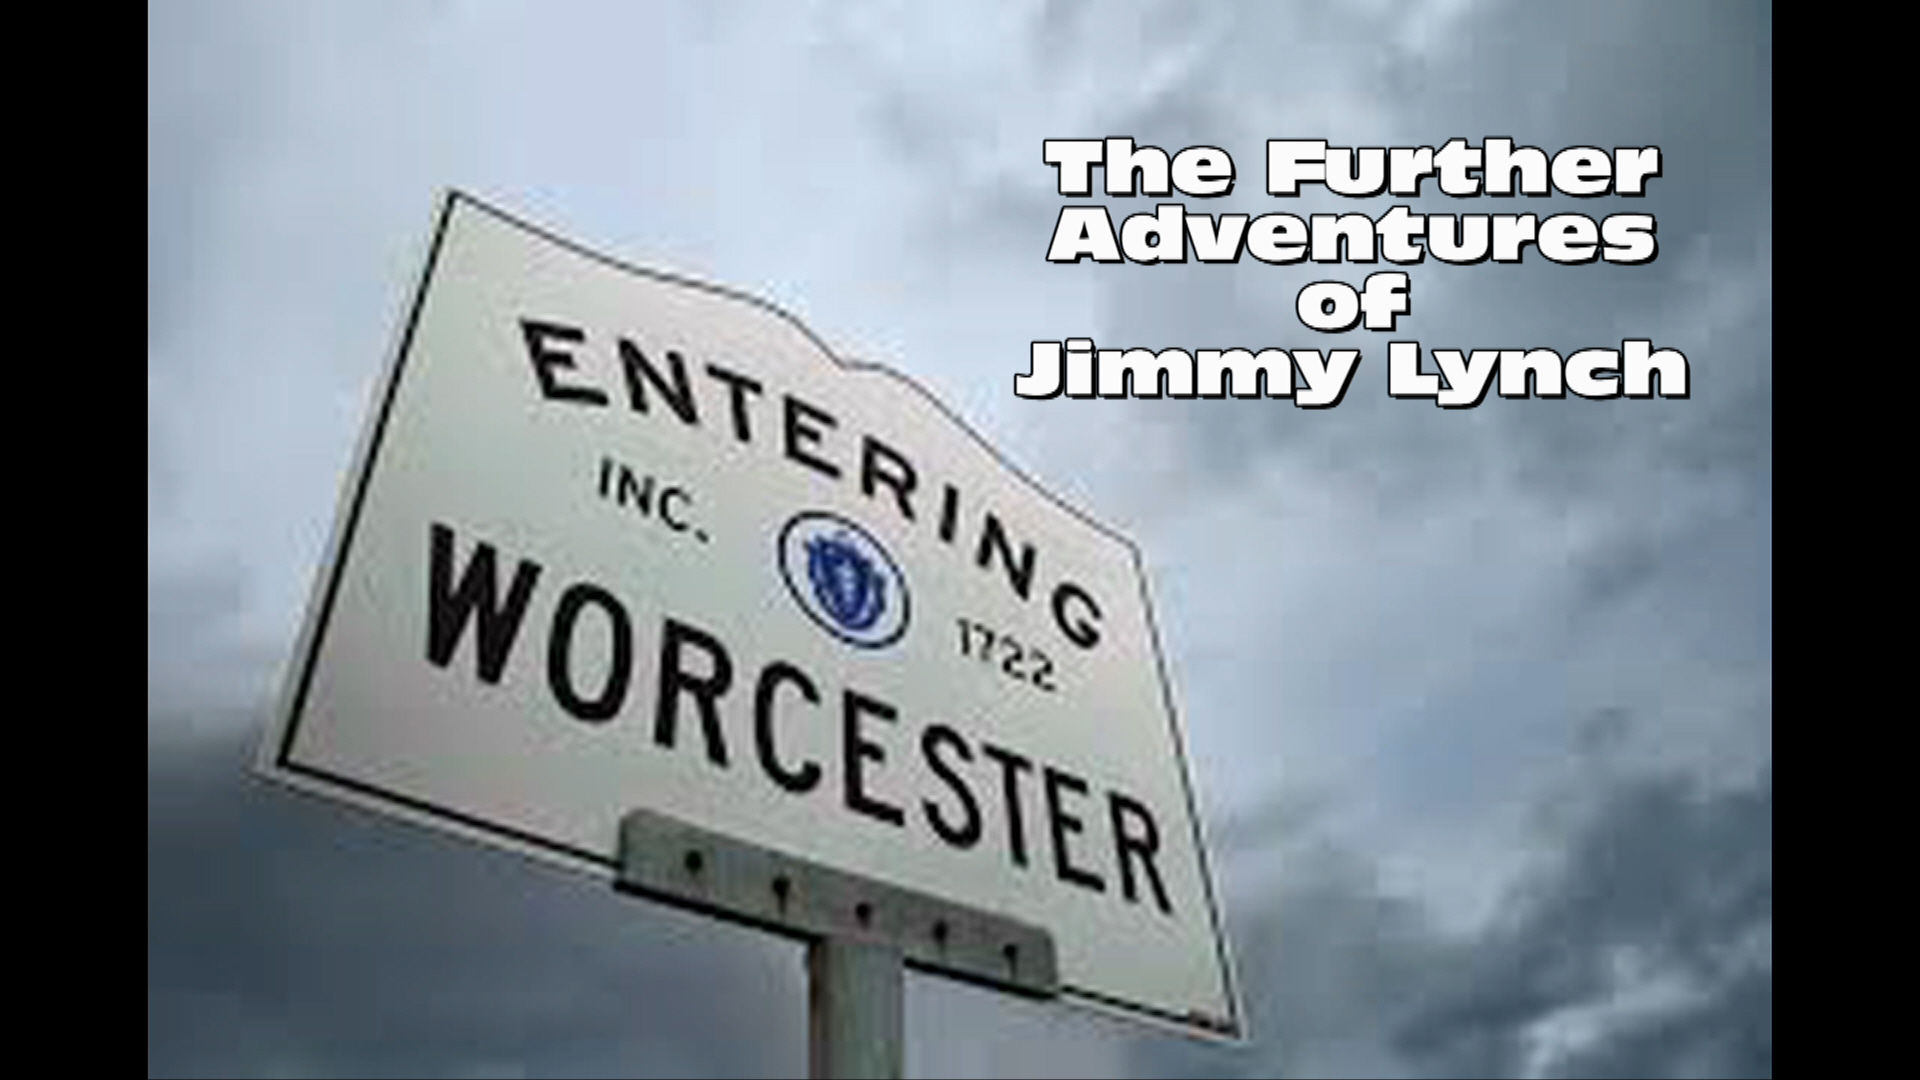 THE FURTHER ADVENTURES OF JIMMY LYNCH